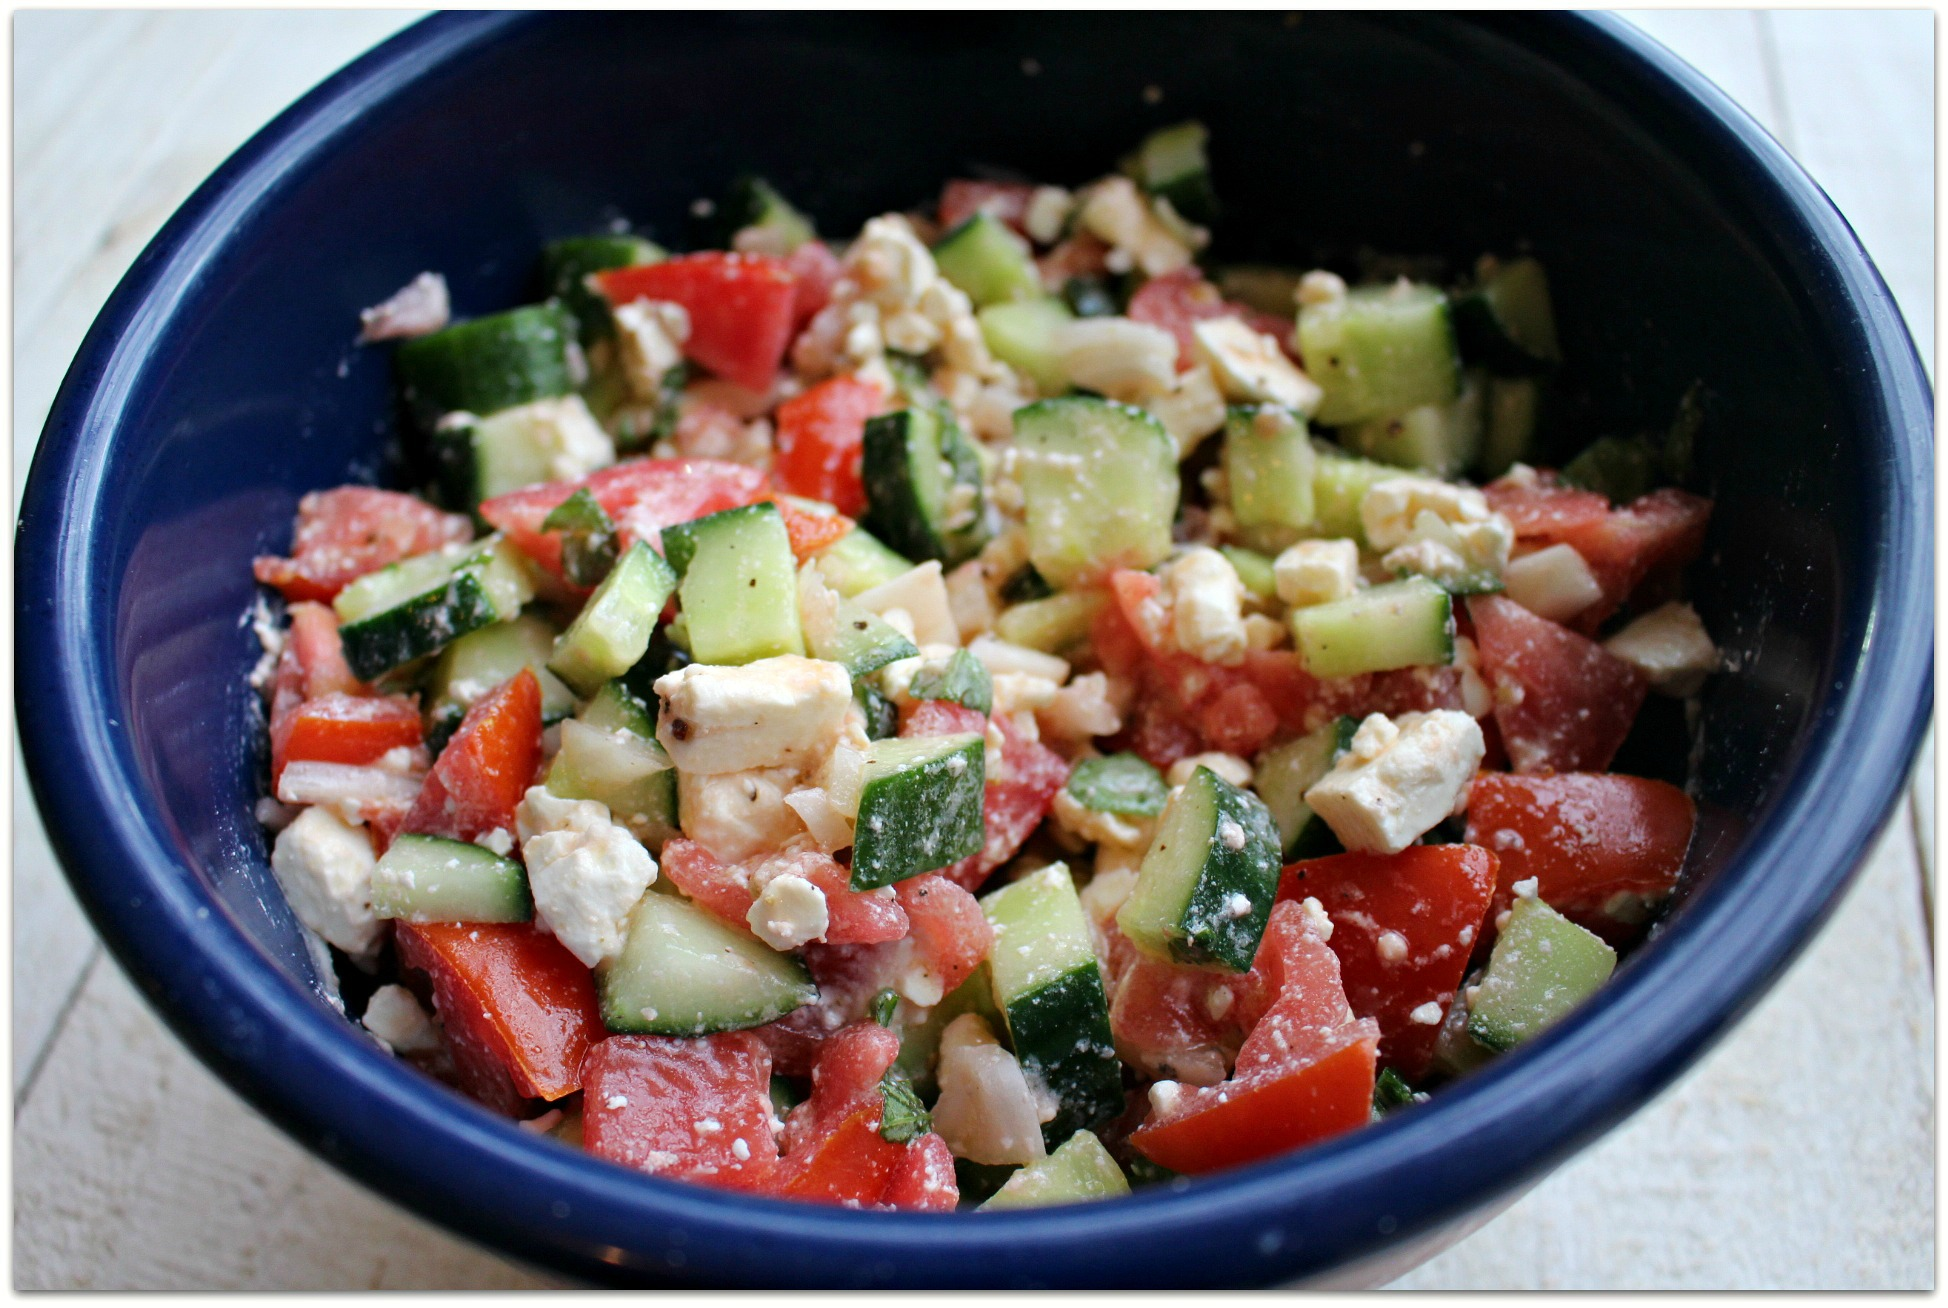 cucumber and tomato salad with feta in a blue bowl